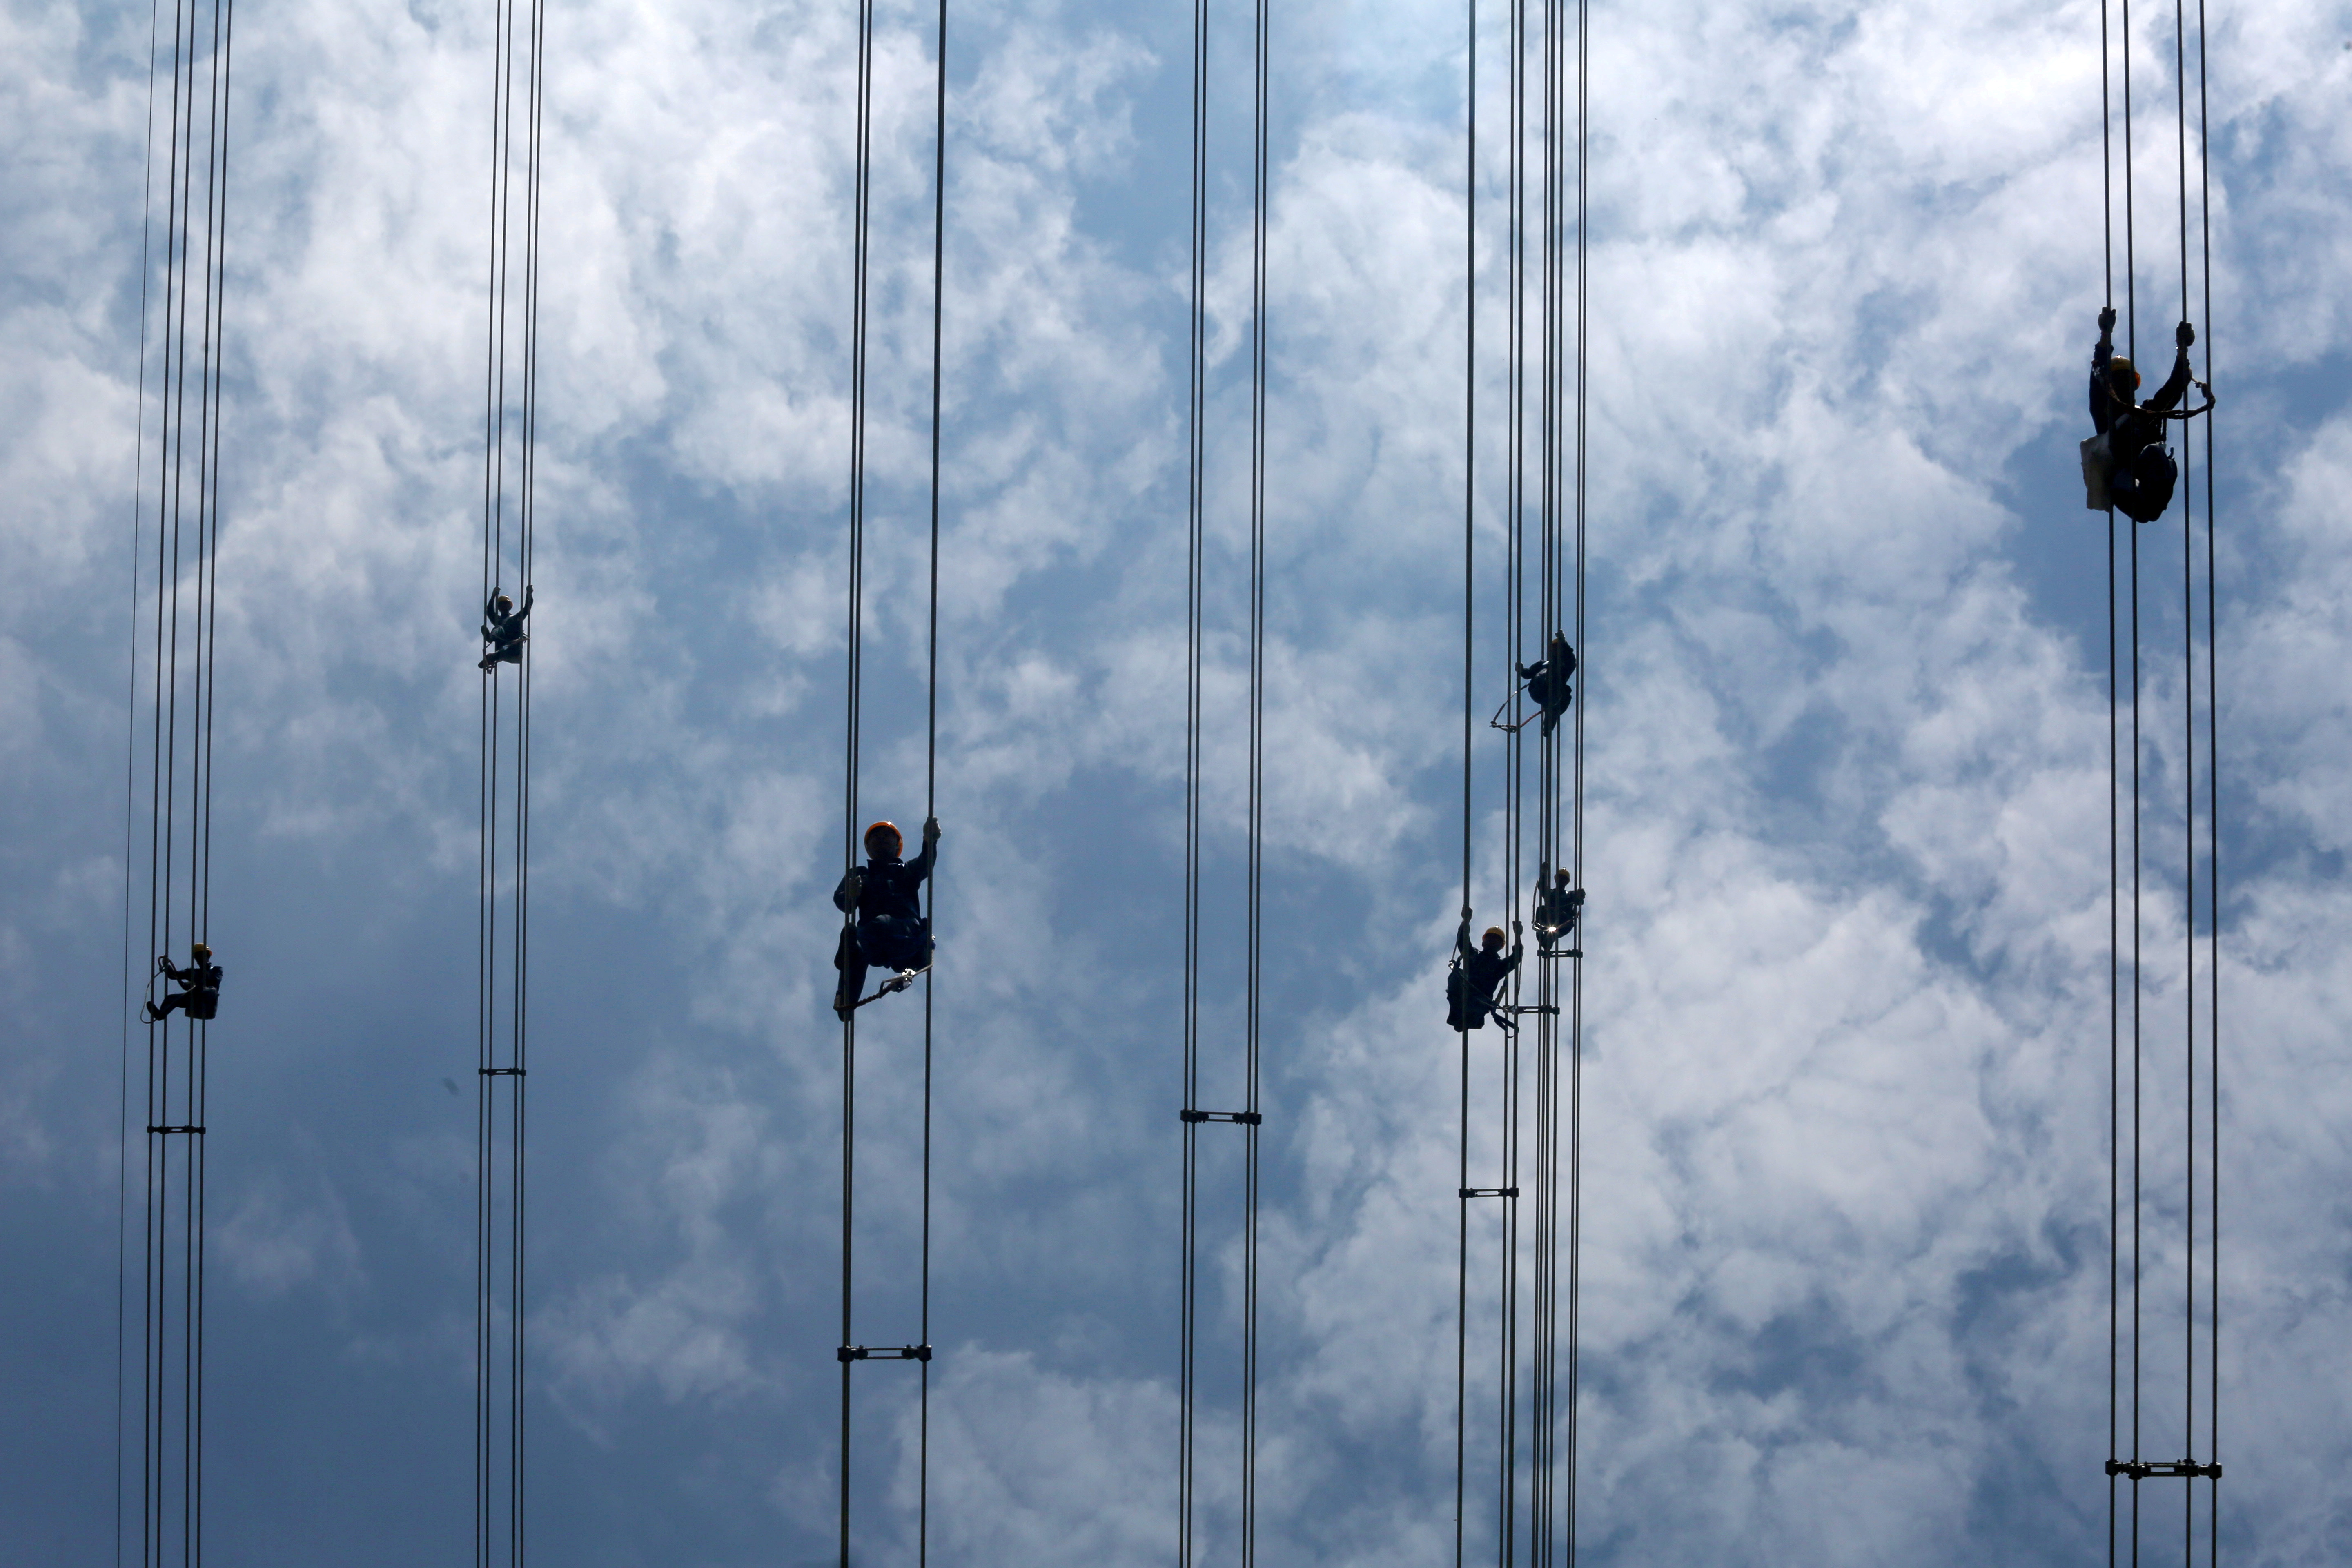 Workers of grid operator China Southern Power Grid inspect power cables connecting transmission towers in Dongguan, Guangdong province, China May 29, 2018. Picture taken May 29, 2018. REUTERS/Stringer